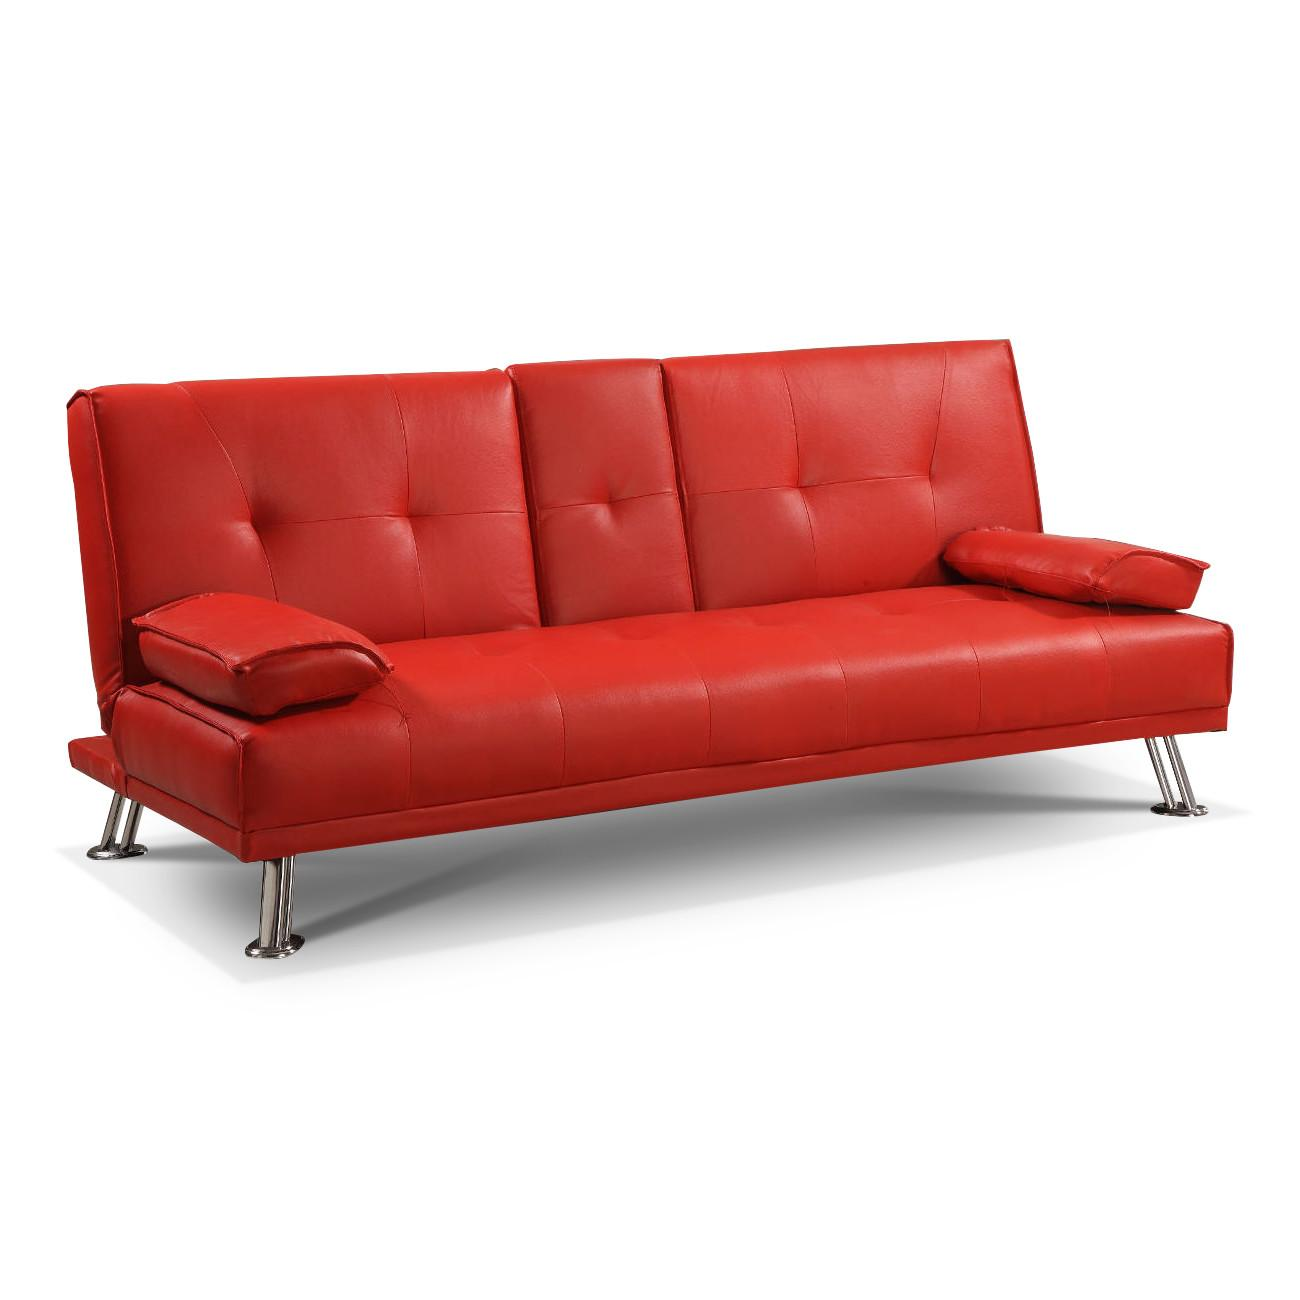 Red Leather Sofa Bed Twin Steal